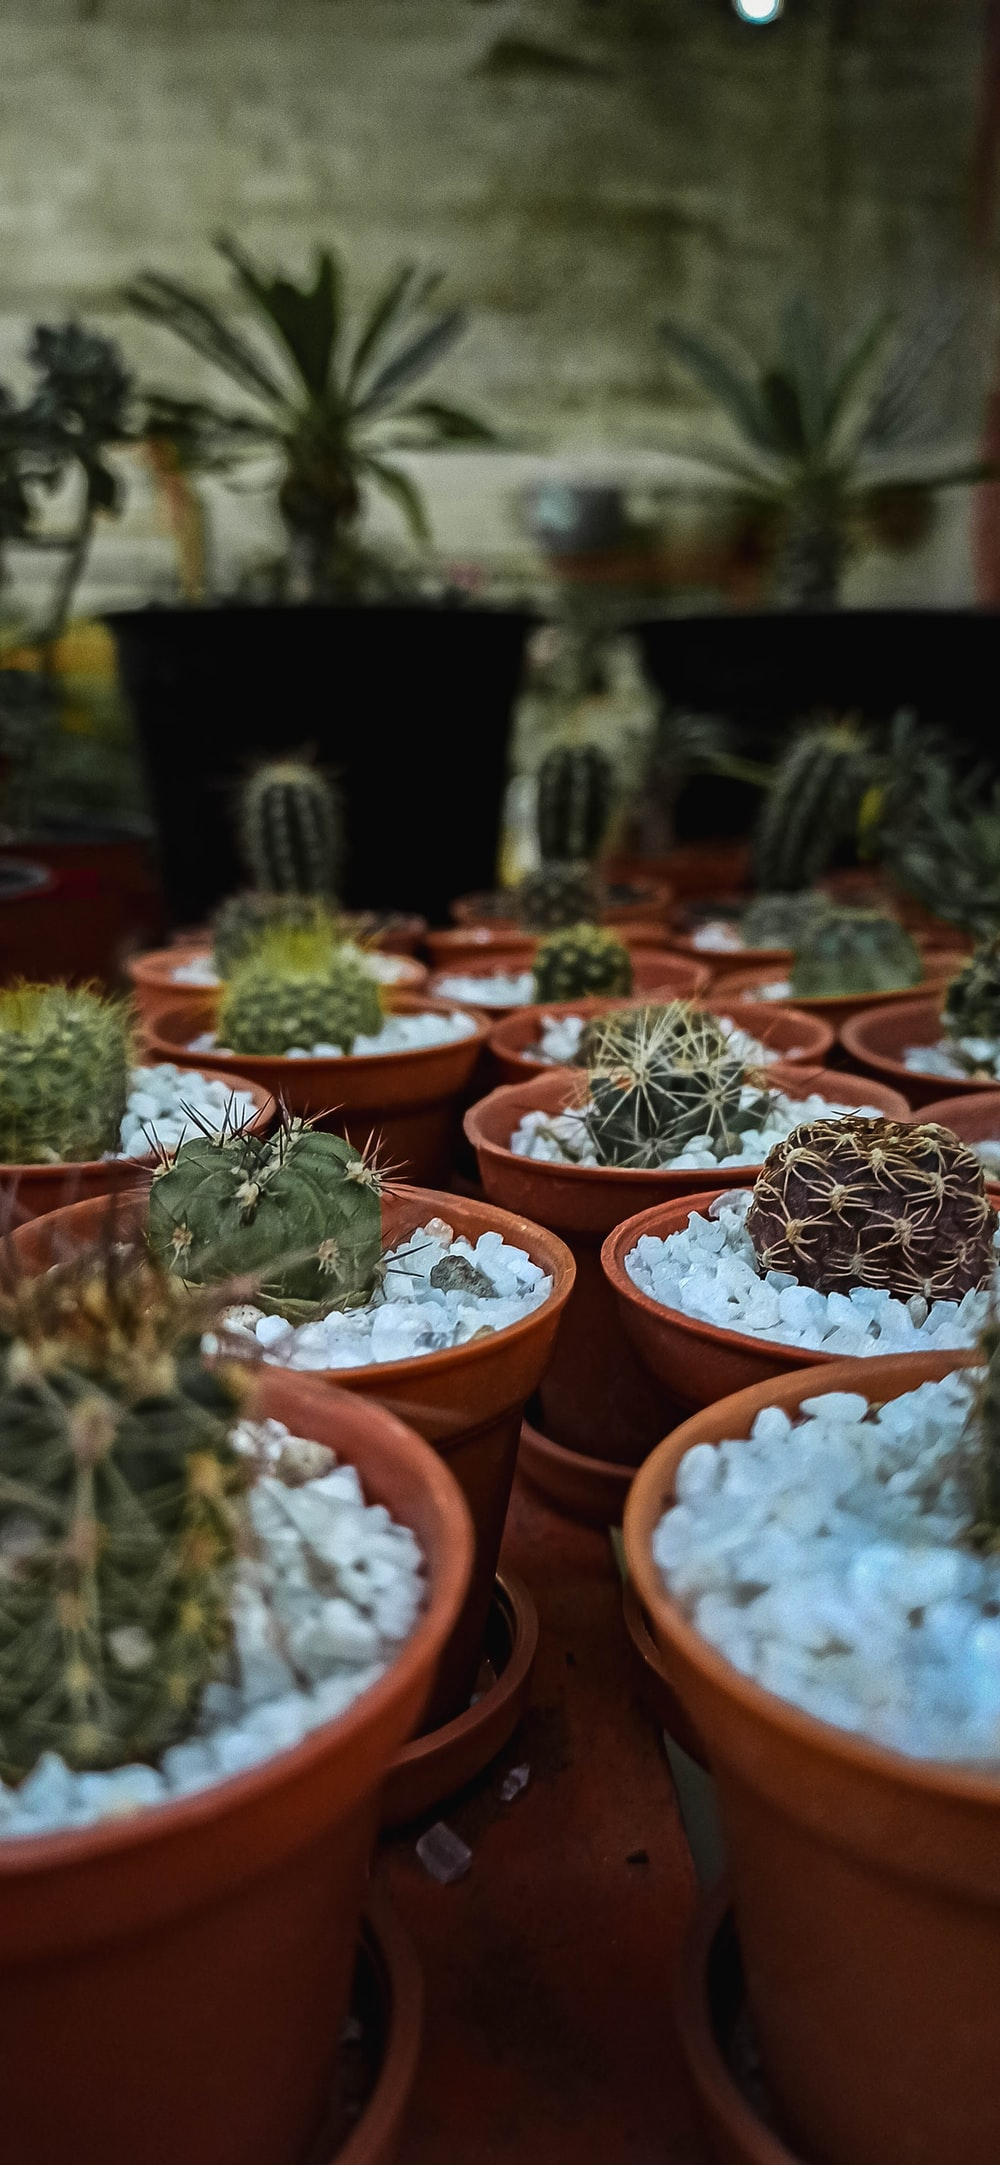 green cactus plants on brown clay pots